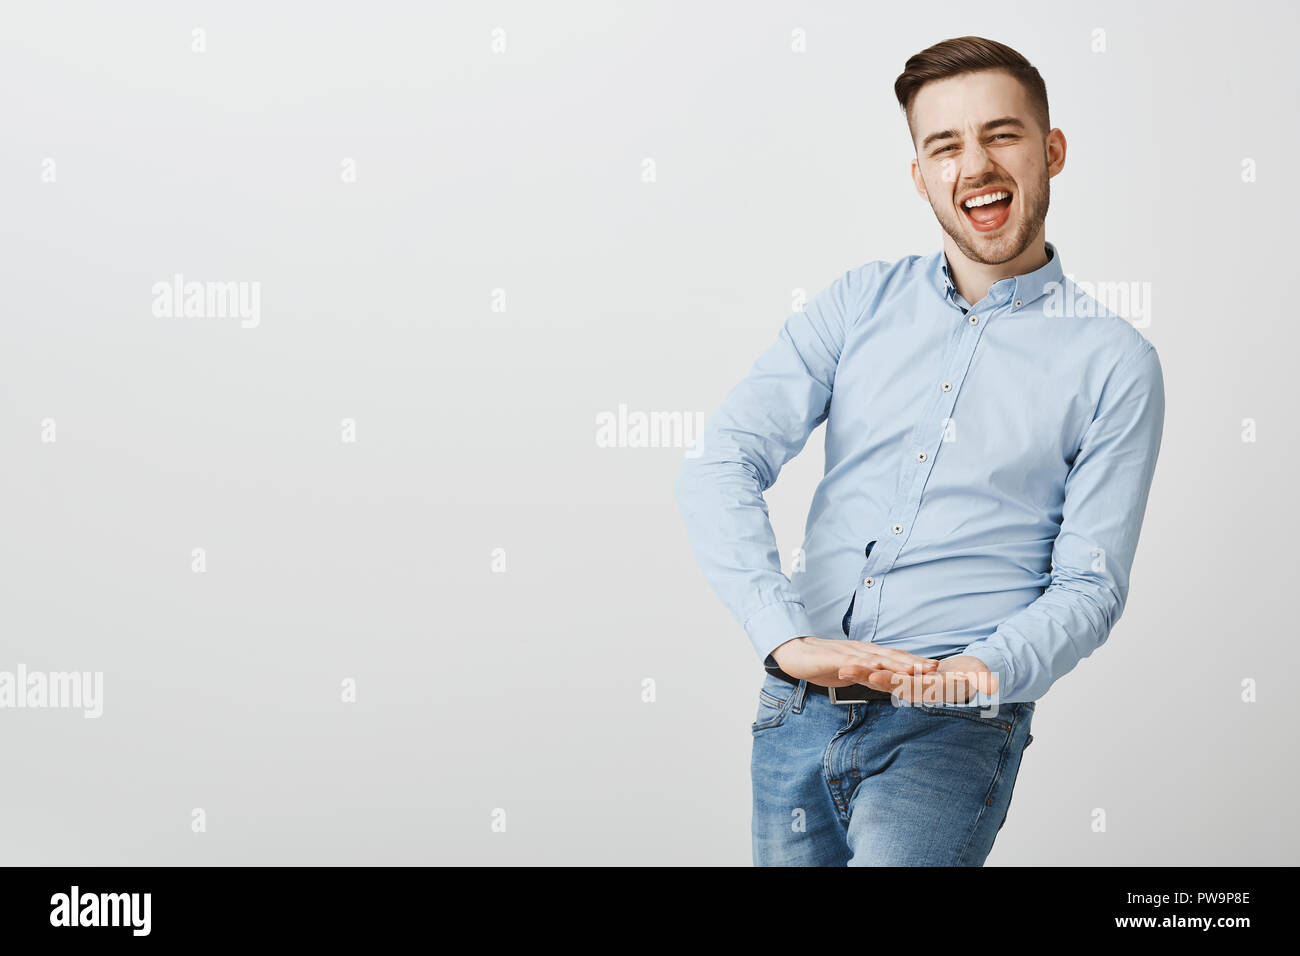 Guy ready to waste money being rich and carefree. Portrait of joyful good-looking young male entrepreneur in formal blue shirt saying yeah while throwing cash in air being successful businessman - Stock Image